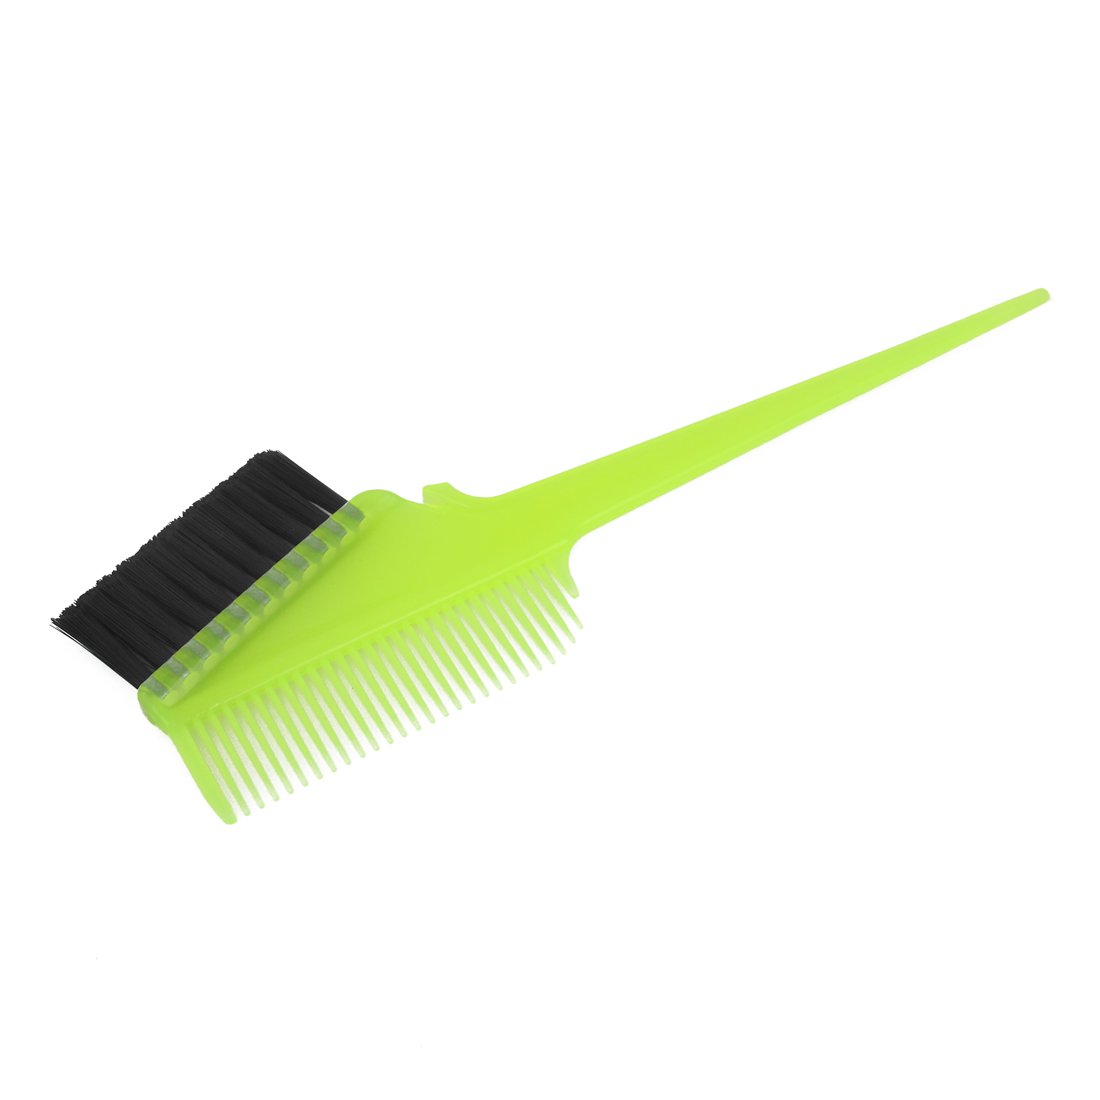 Green Tapered Handle Teeth Hair Dye Dyeing Comb Brush Hairstyle for Hairdresser